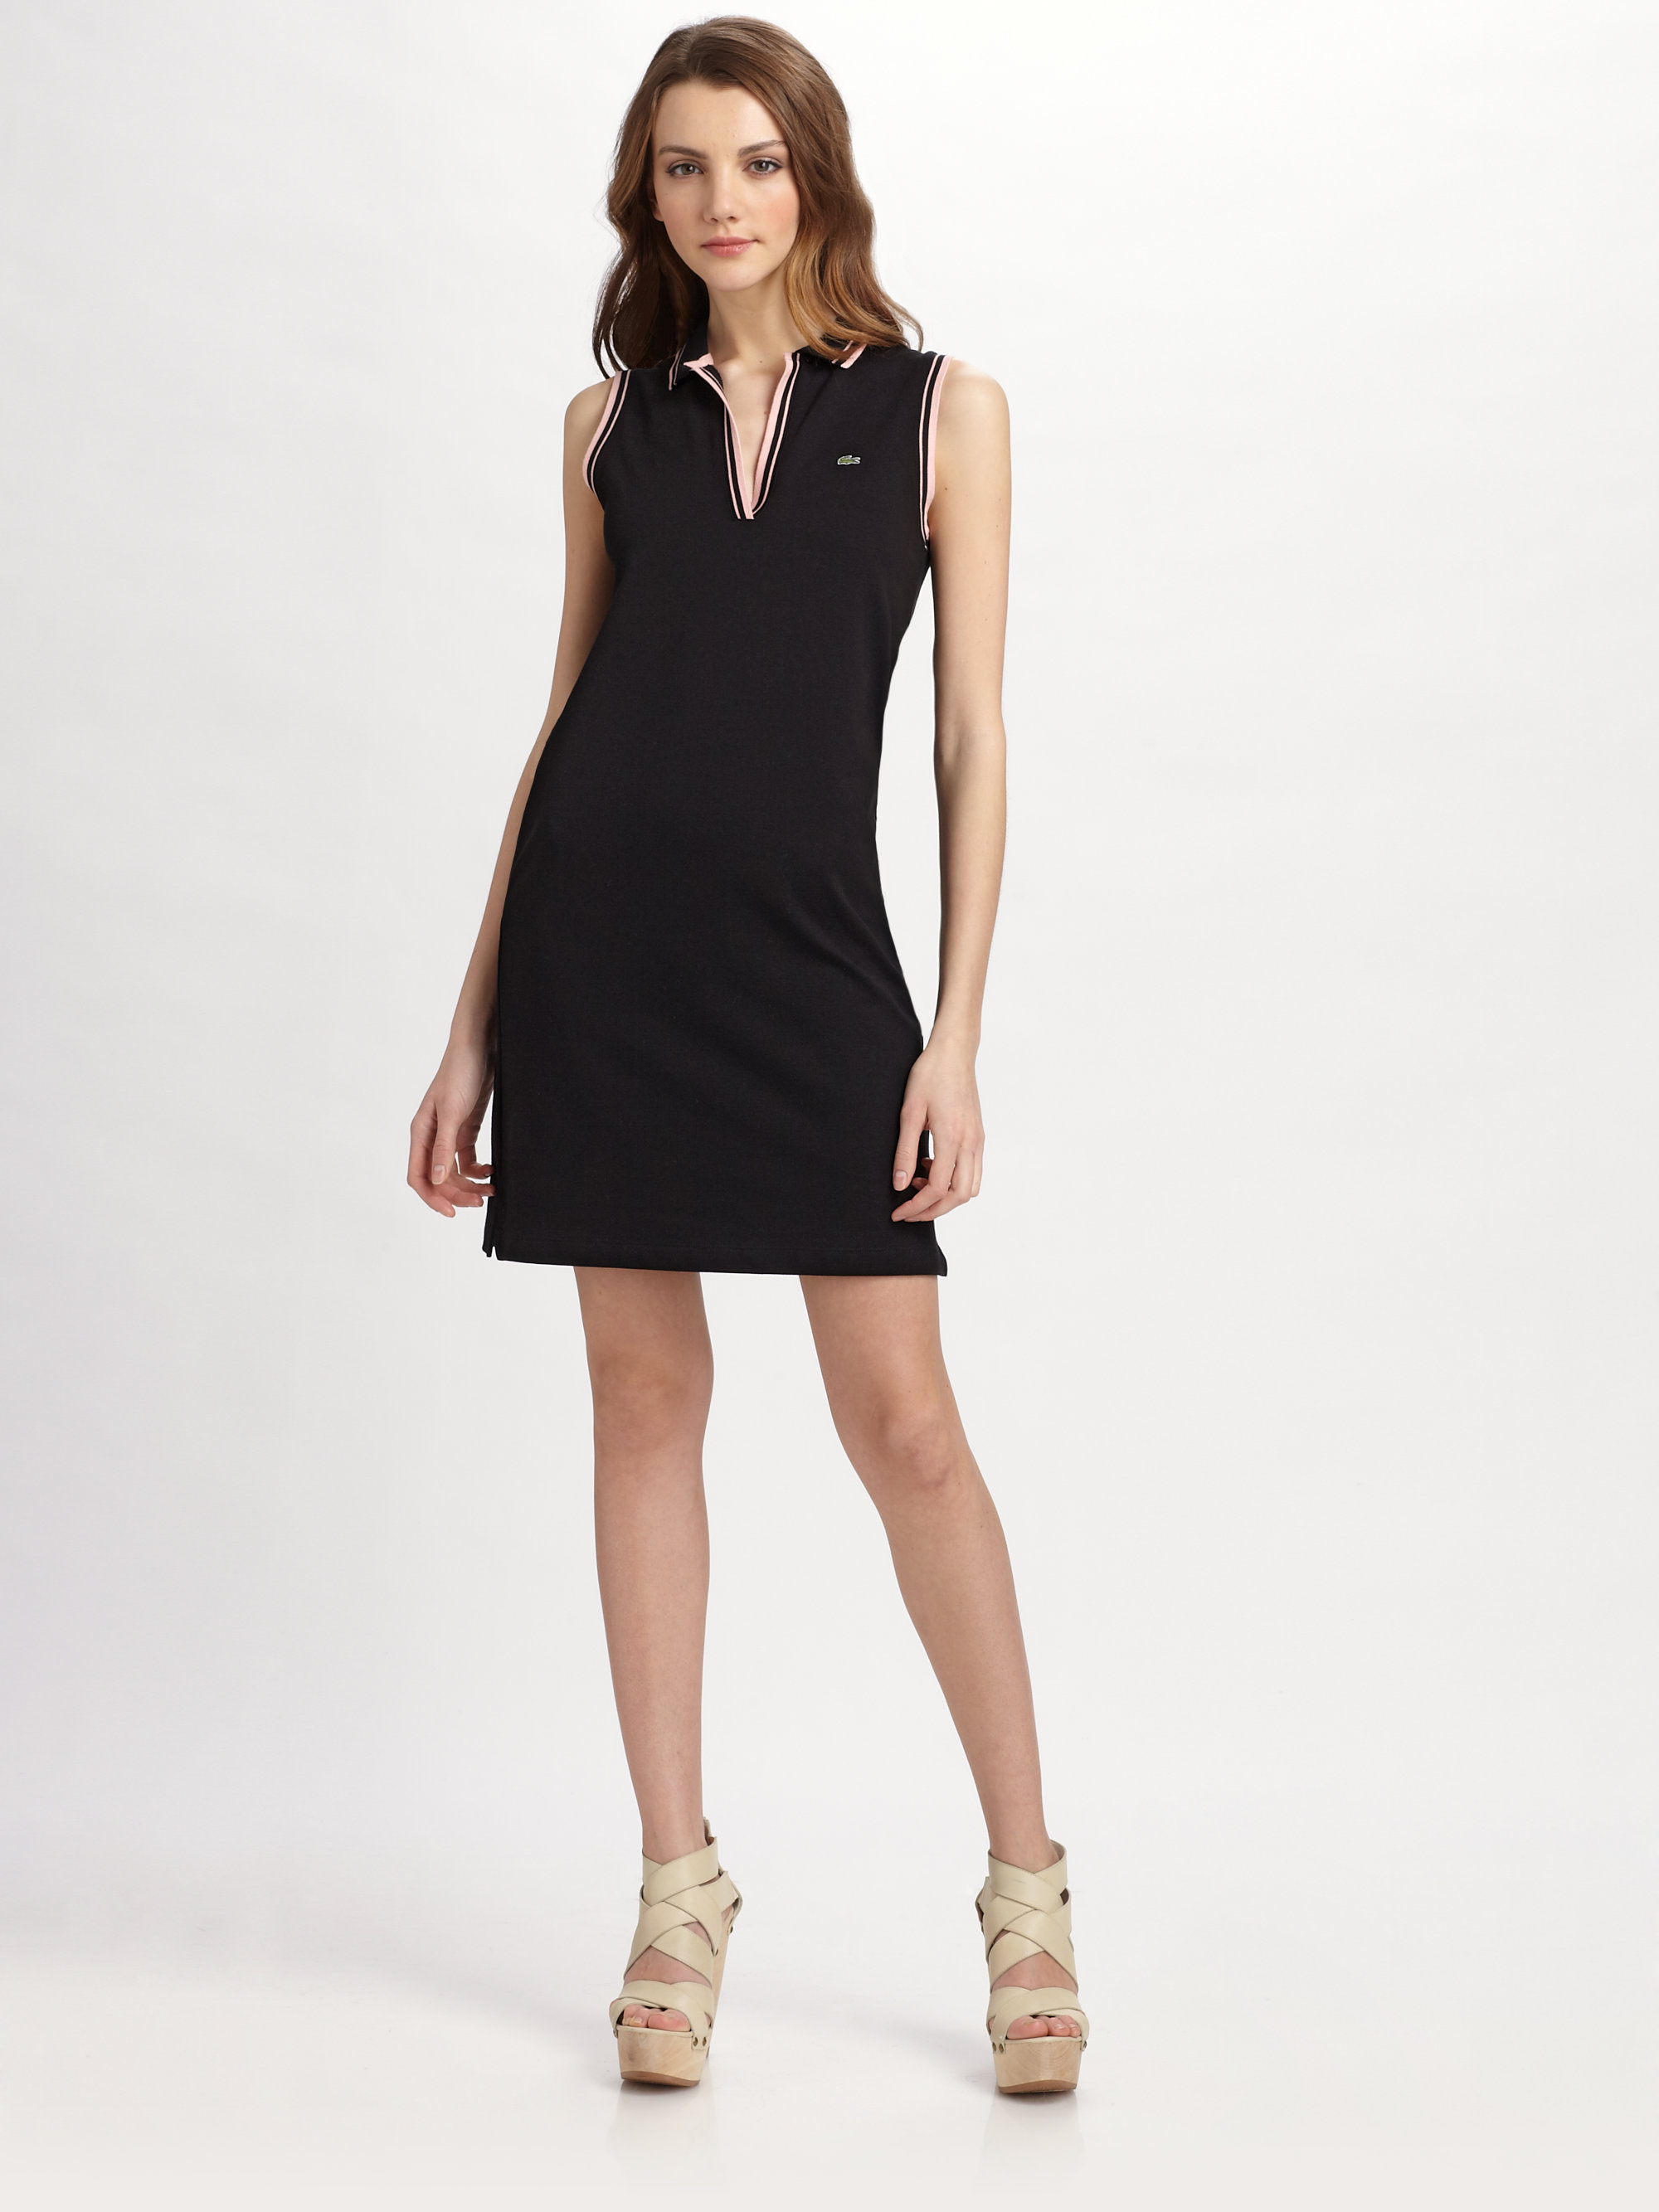 Lyst - Lacoste Stretch Cotton Piqué Sleeveless Polo Dress ...